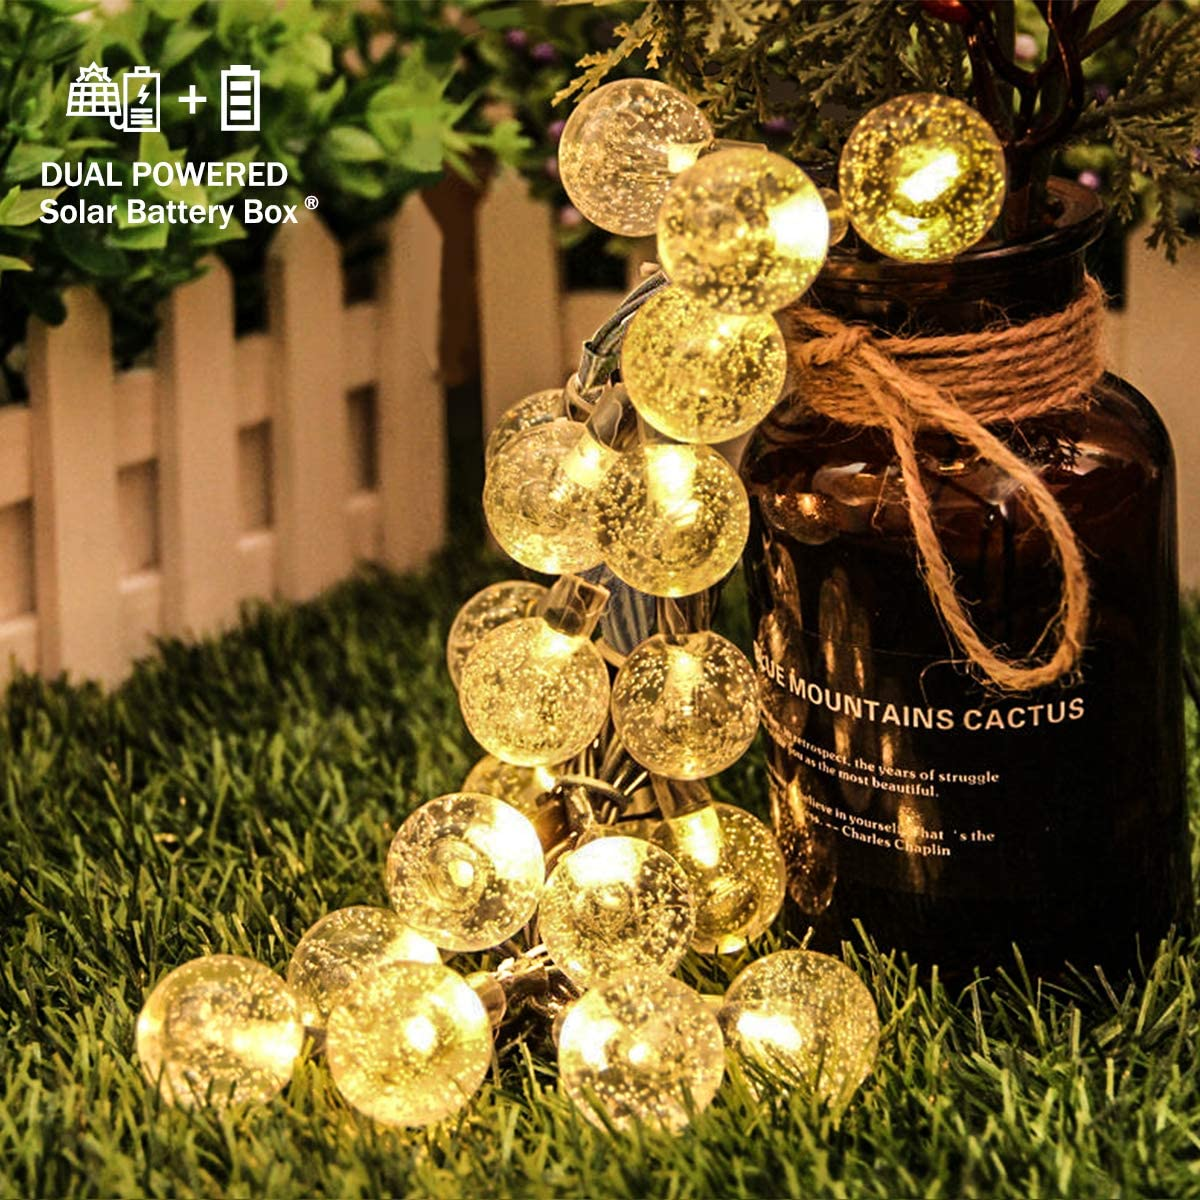 E-POWIND Outdoor Globe String Lights 23ft 50 LED Solar Battery Dual Powered Indoor Crystal Ball String Lights for Christmas Party Kids Girls Bedroom Curtain Camp Garden Patio Tree Yard Decor, Warm